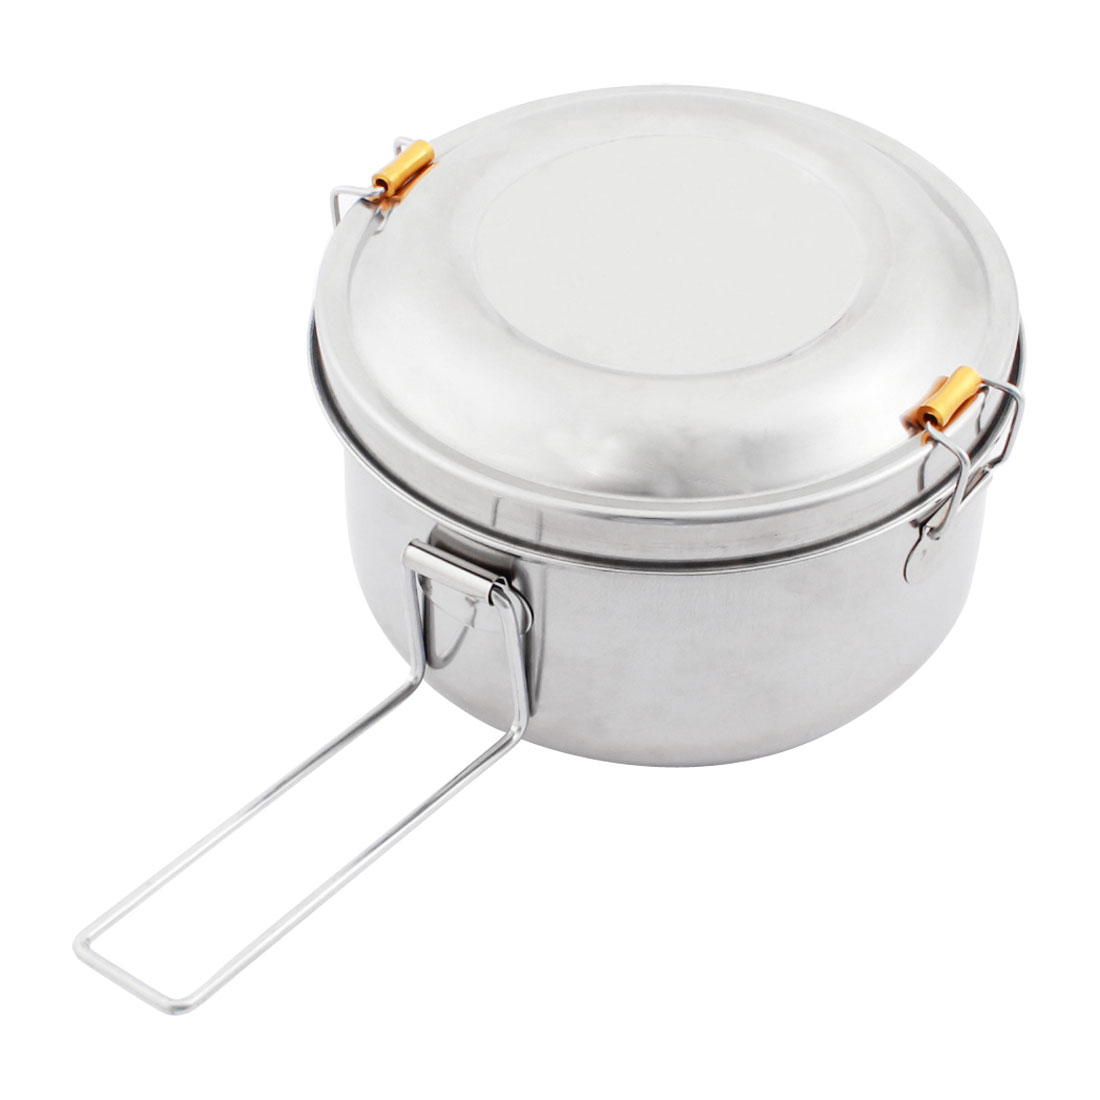 Detachable Handle Stainless Steel 2 Layers Round Shape Lunch Box